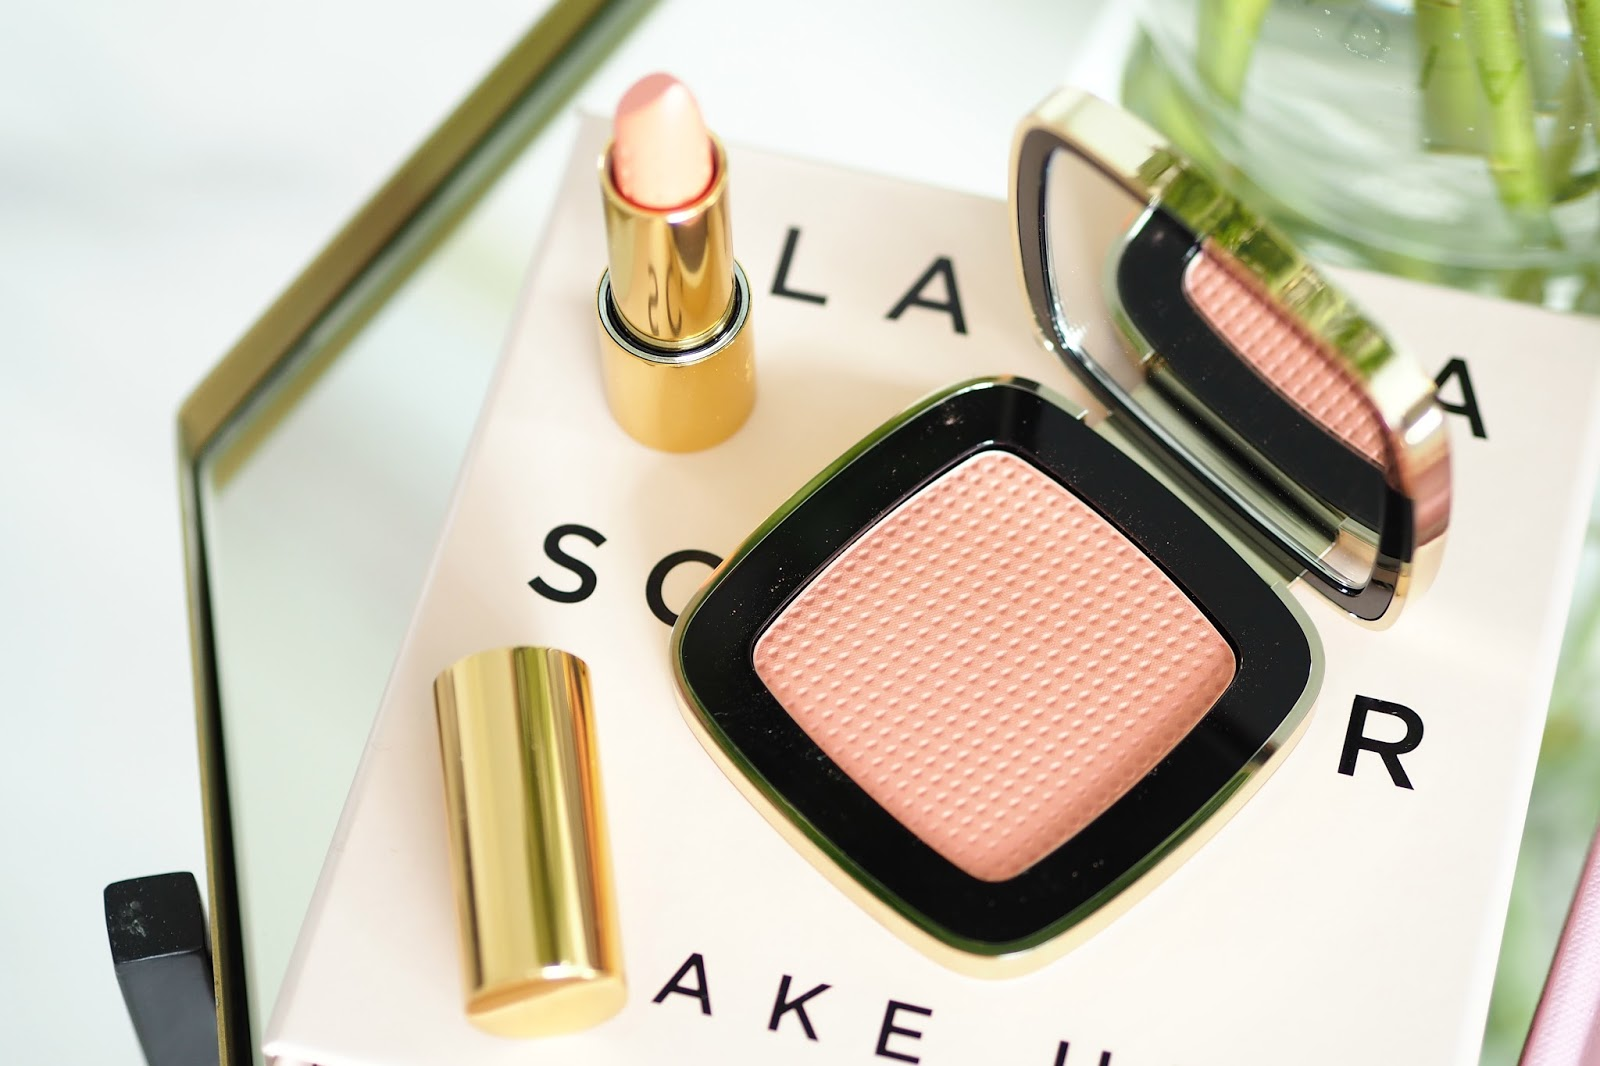 Claudia Schiffer Compact Blusher shade 22 - Passionfruit review